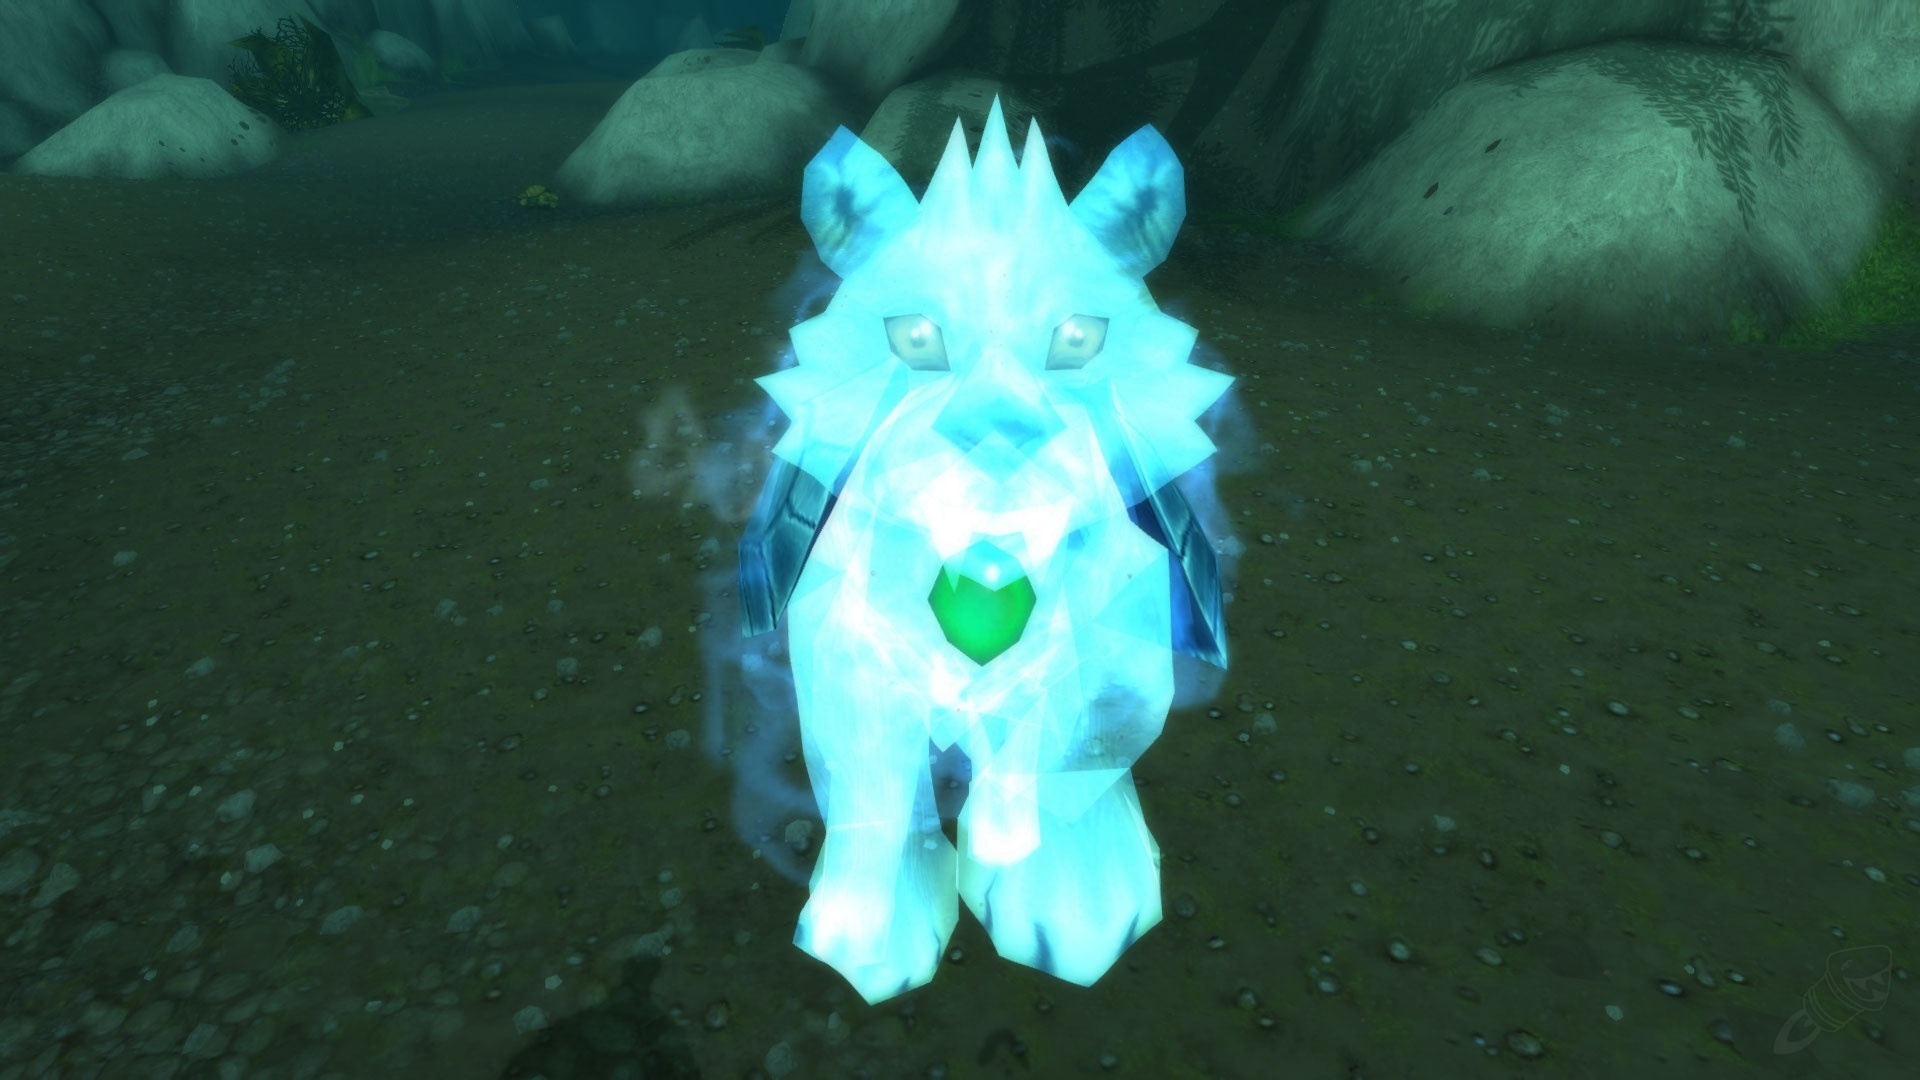 Spectral Tiger Cub screenshots 10